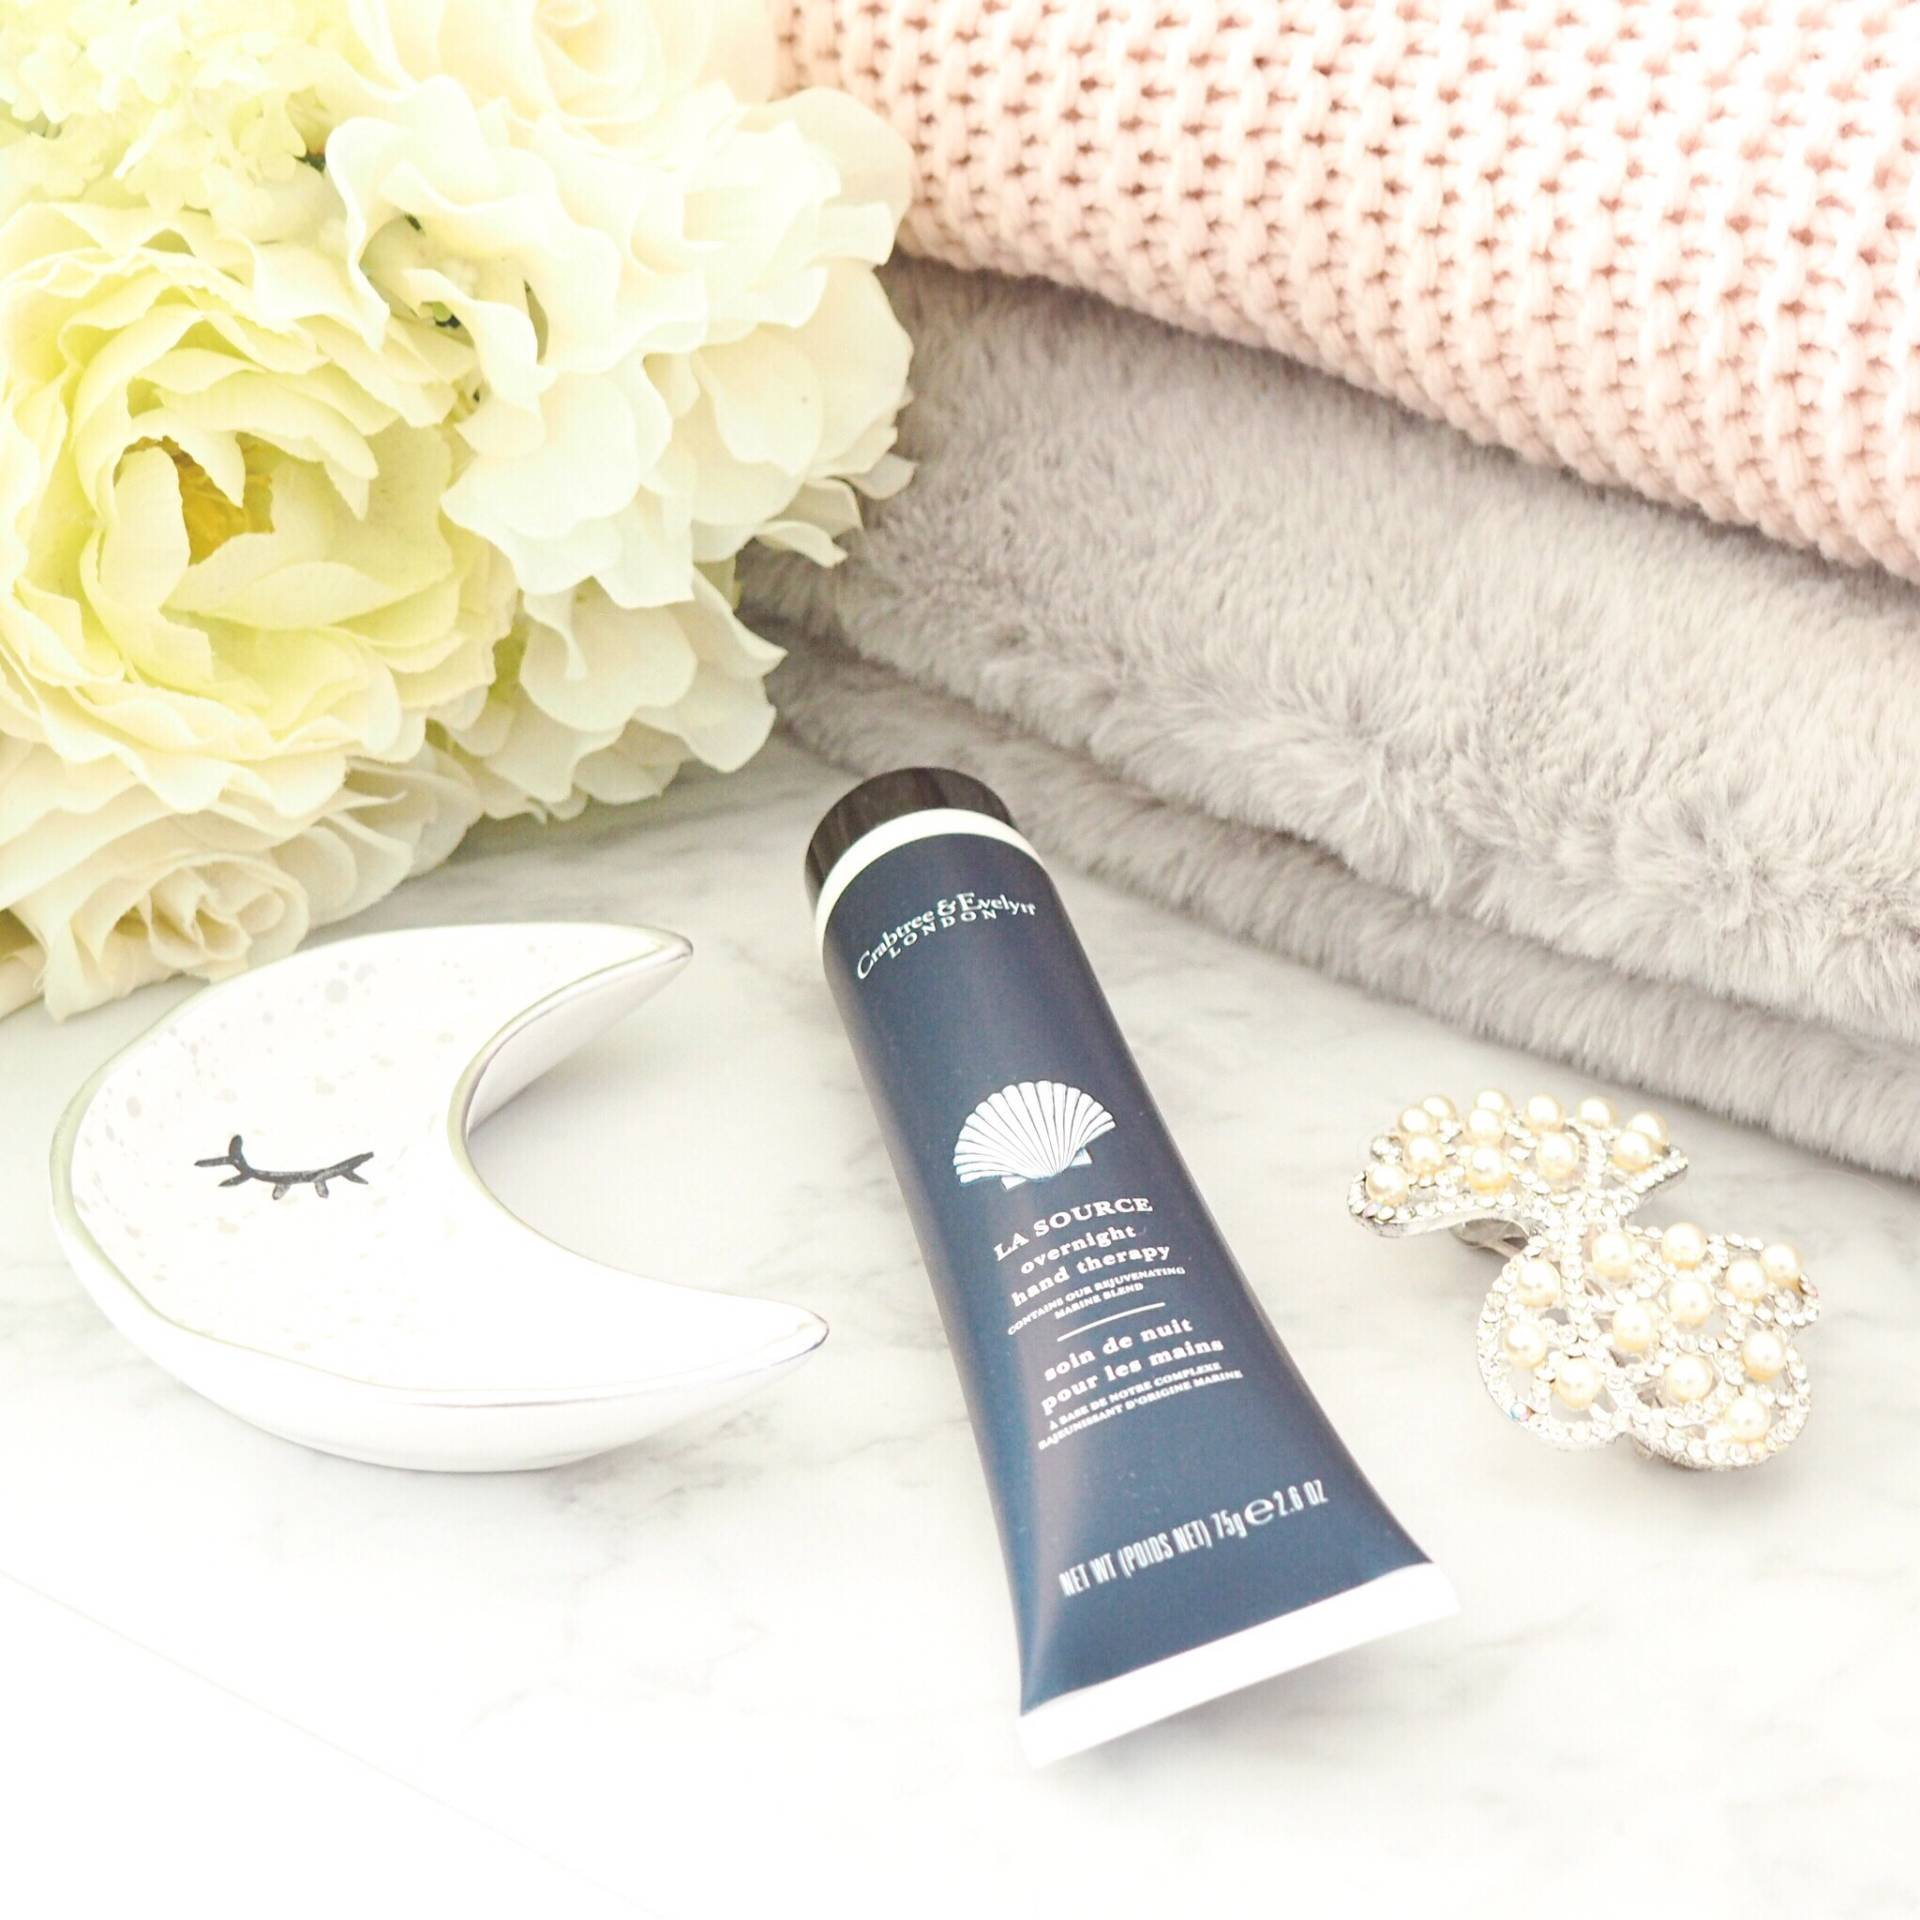 Crabtree and Evelyn Overnight Hand Therapy